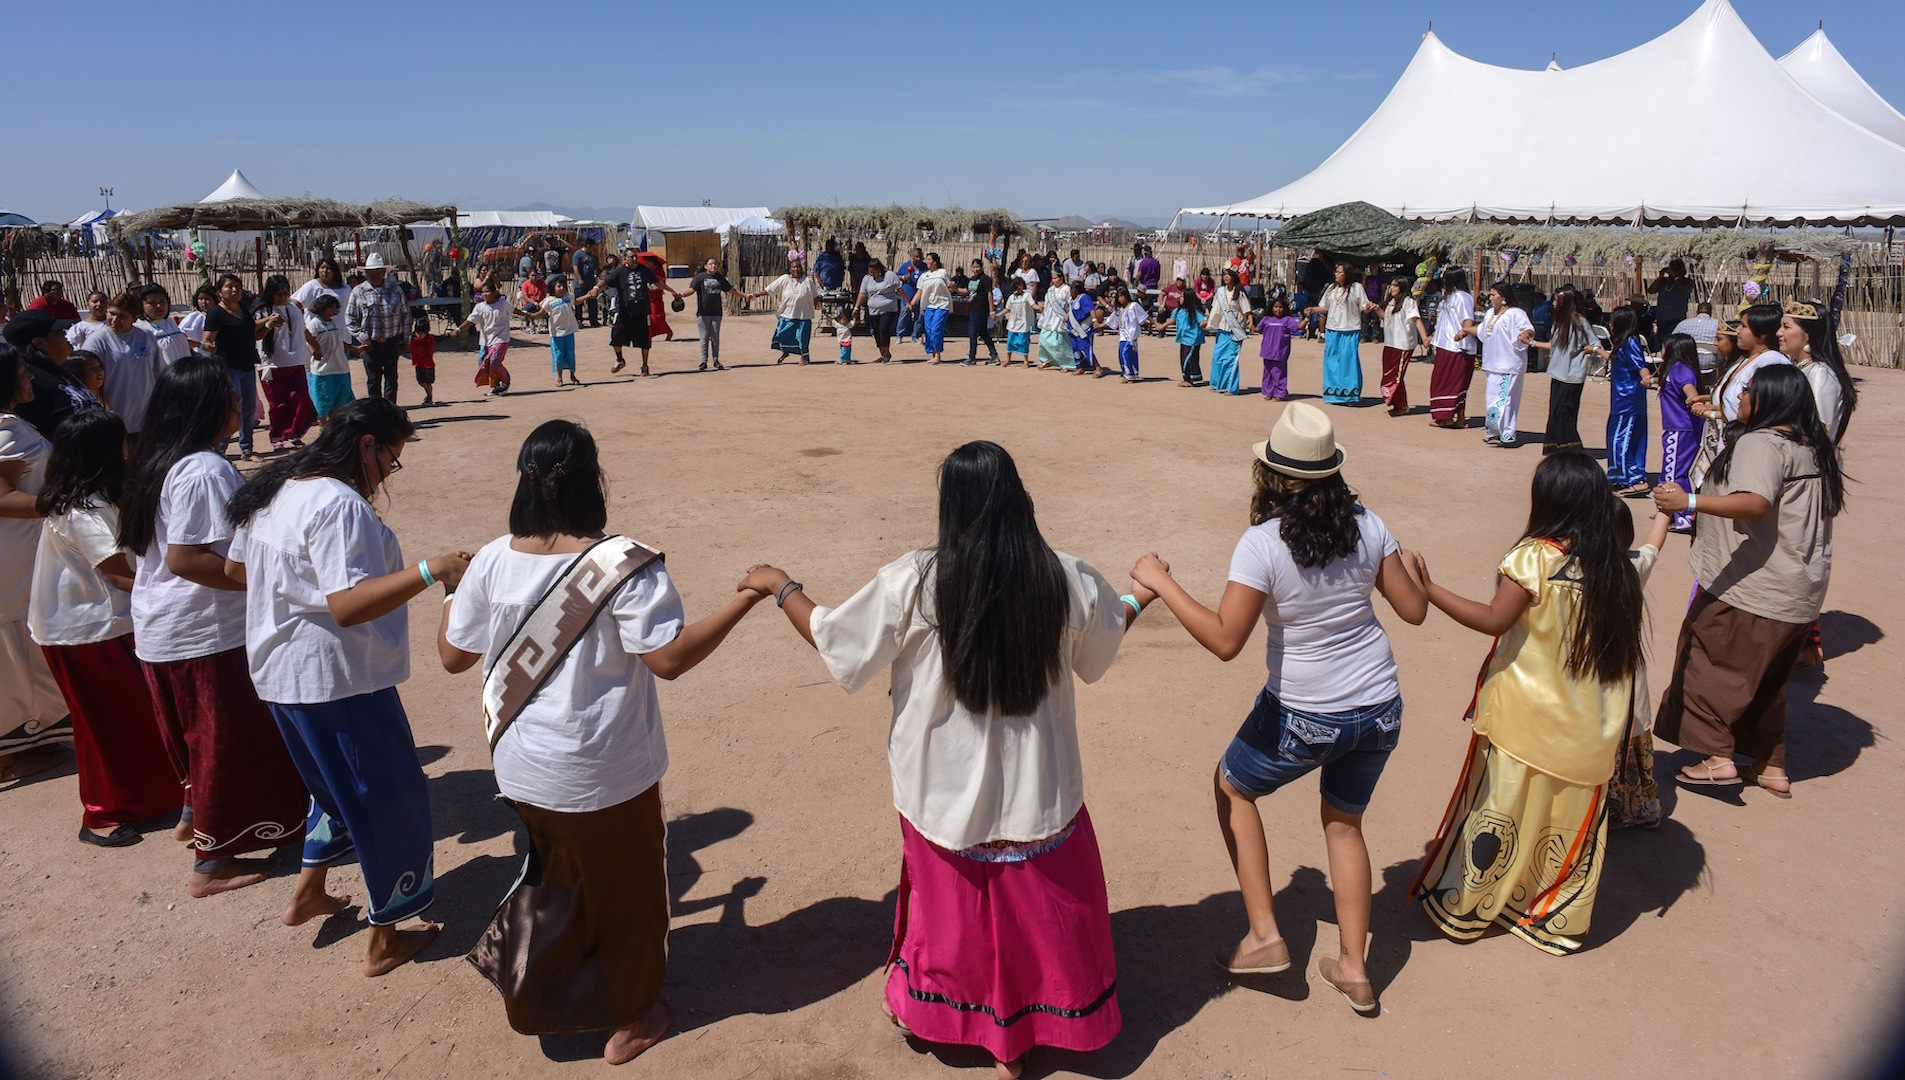 Dozens hold hands in a circle dance at a powwow on the Tohono O'Odham reservation.